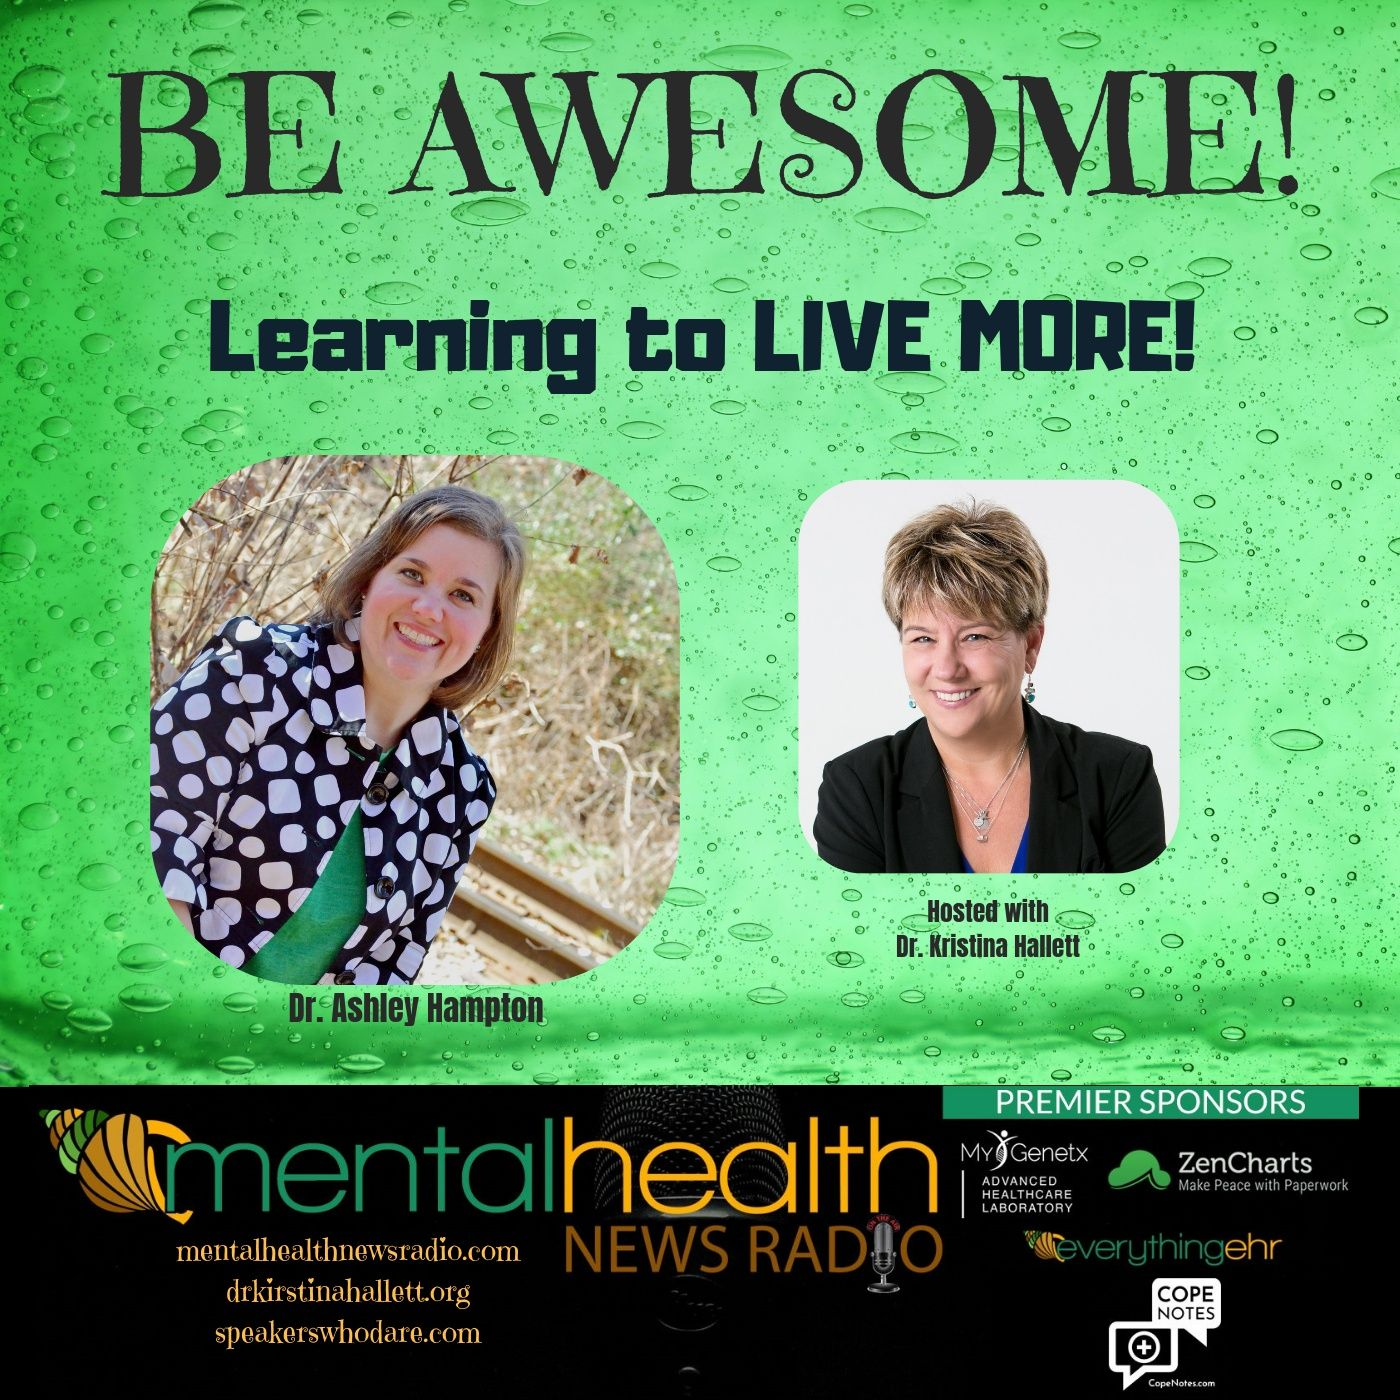 Mental Health News Radio - Be Awesome: Learning to Live More